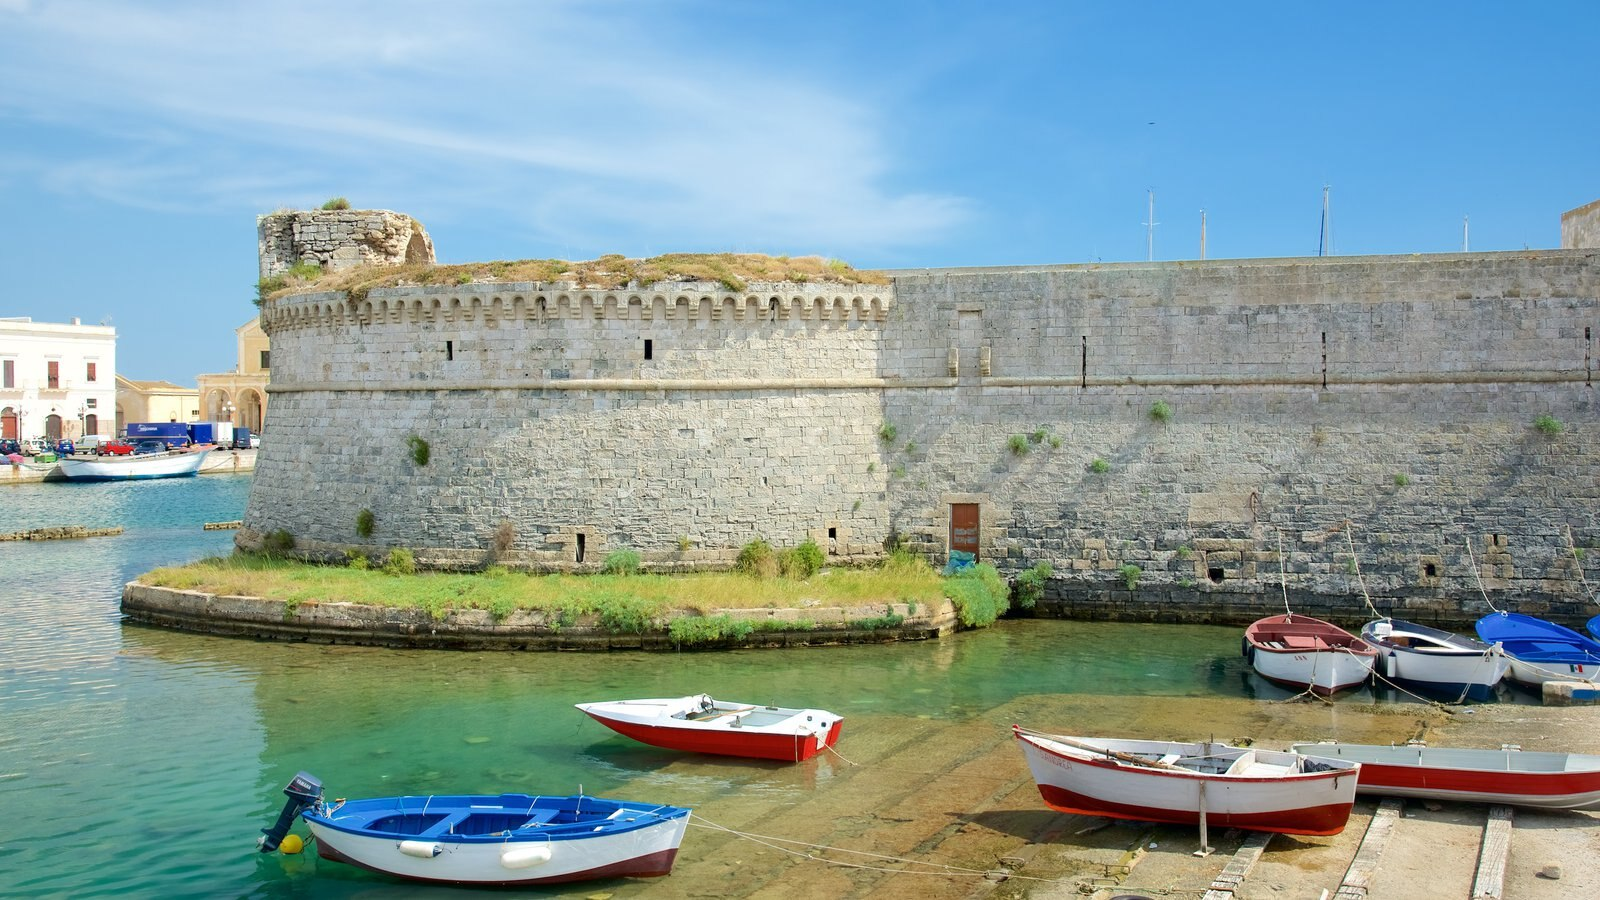 Gallipoli Castle which includes heritage architecture, general coastal views and a castle